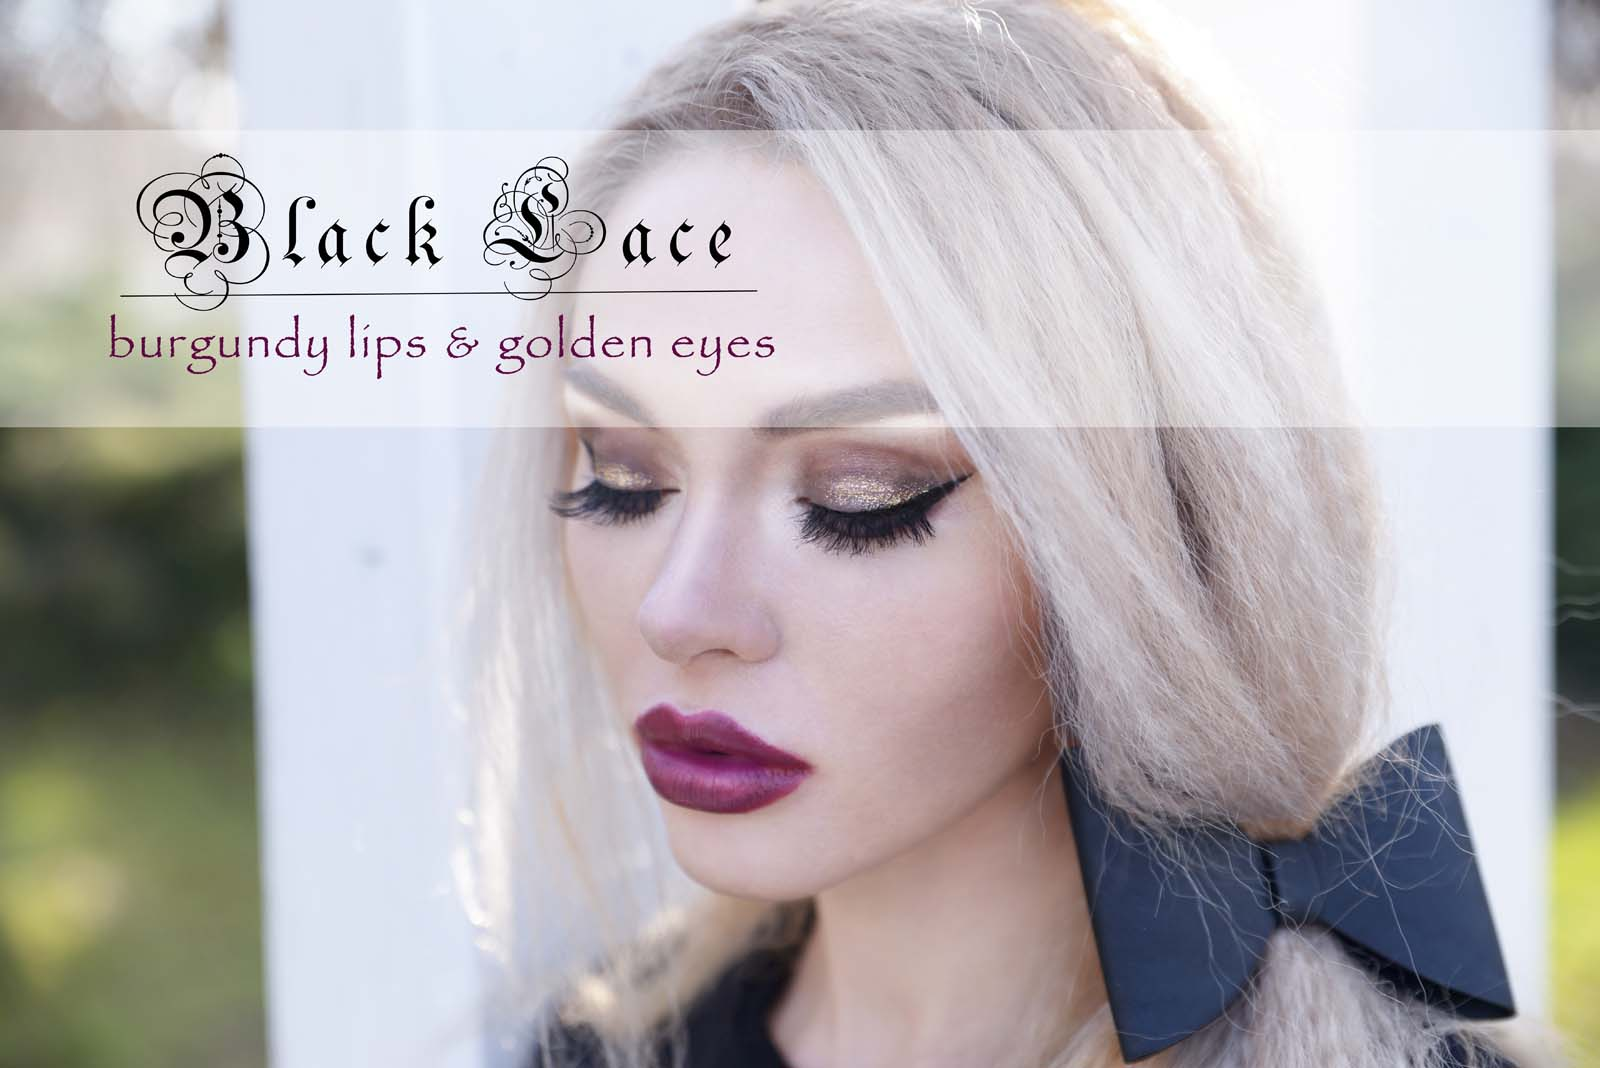 03_black_lace_burgundy_lips_golden_eyes